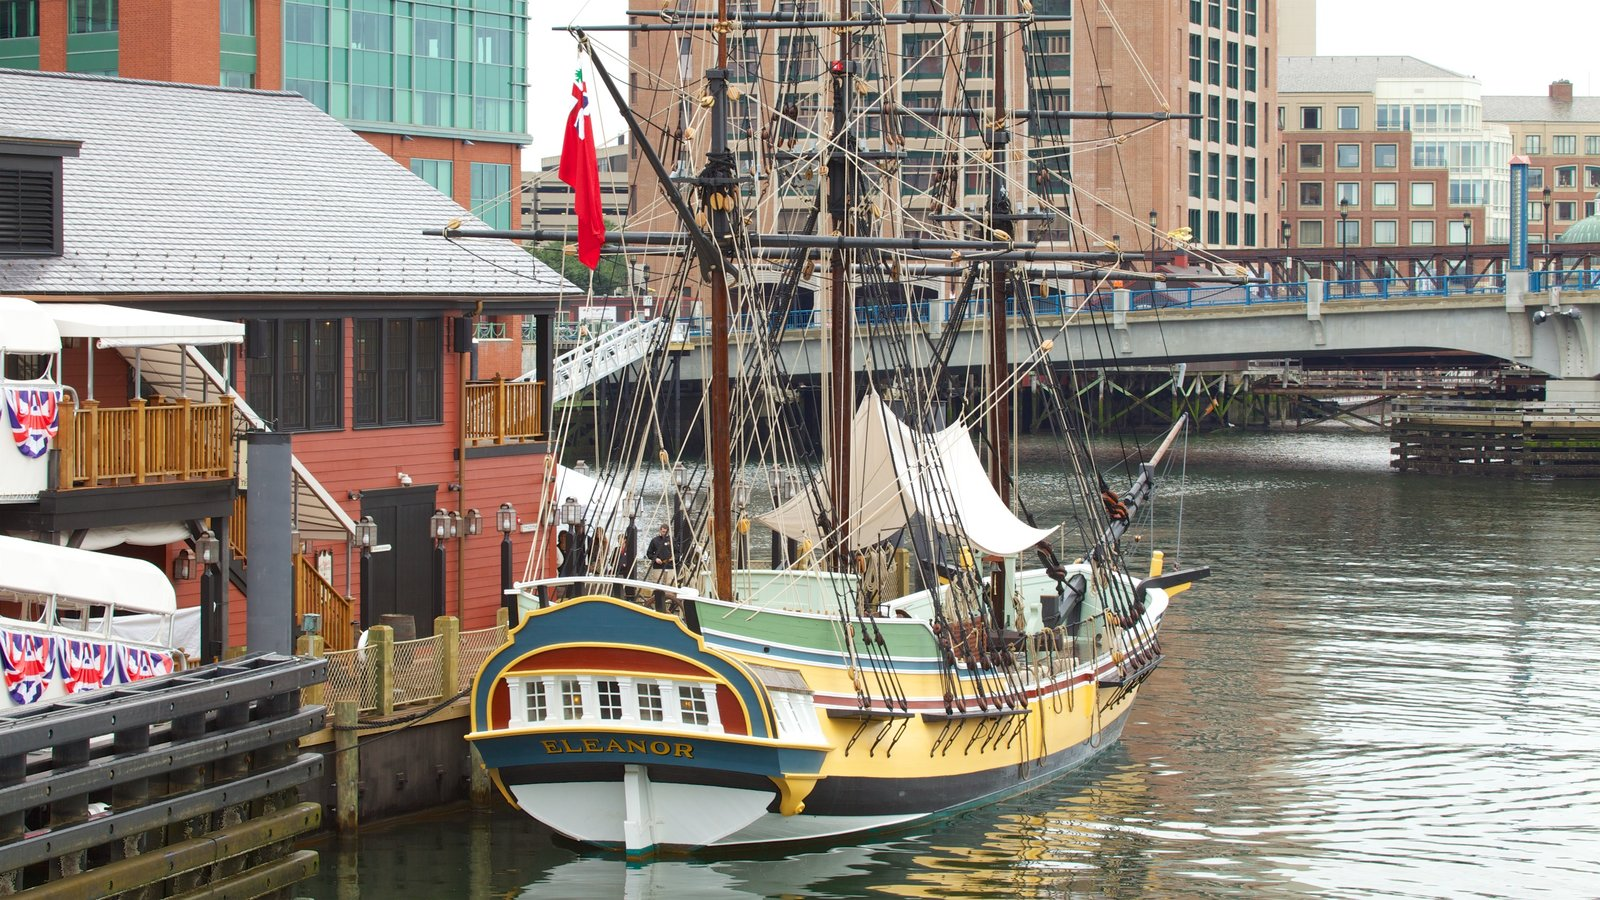 boston tea party ships museum pictures view photos images of boston tea party ships museum. Black Bedroom Furniture Sets. Home Design Ideas